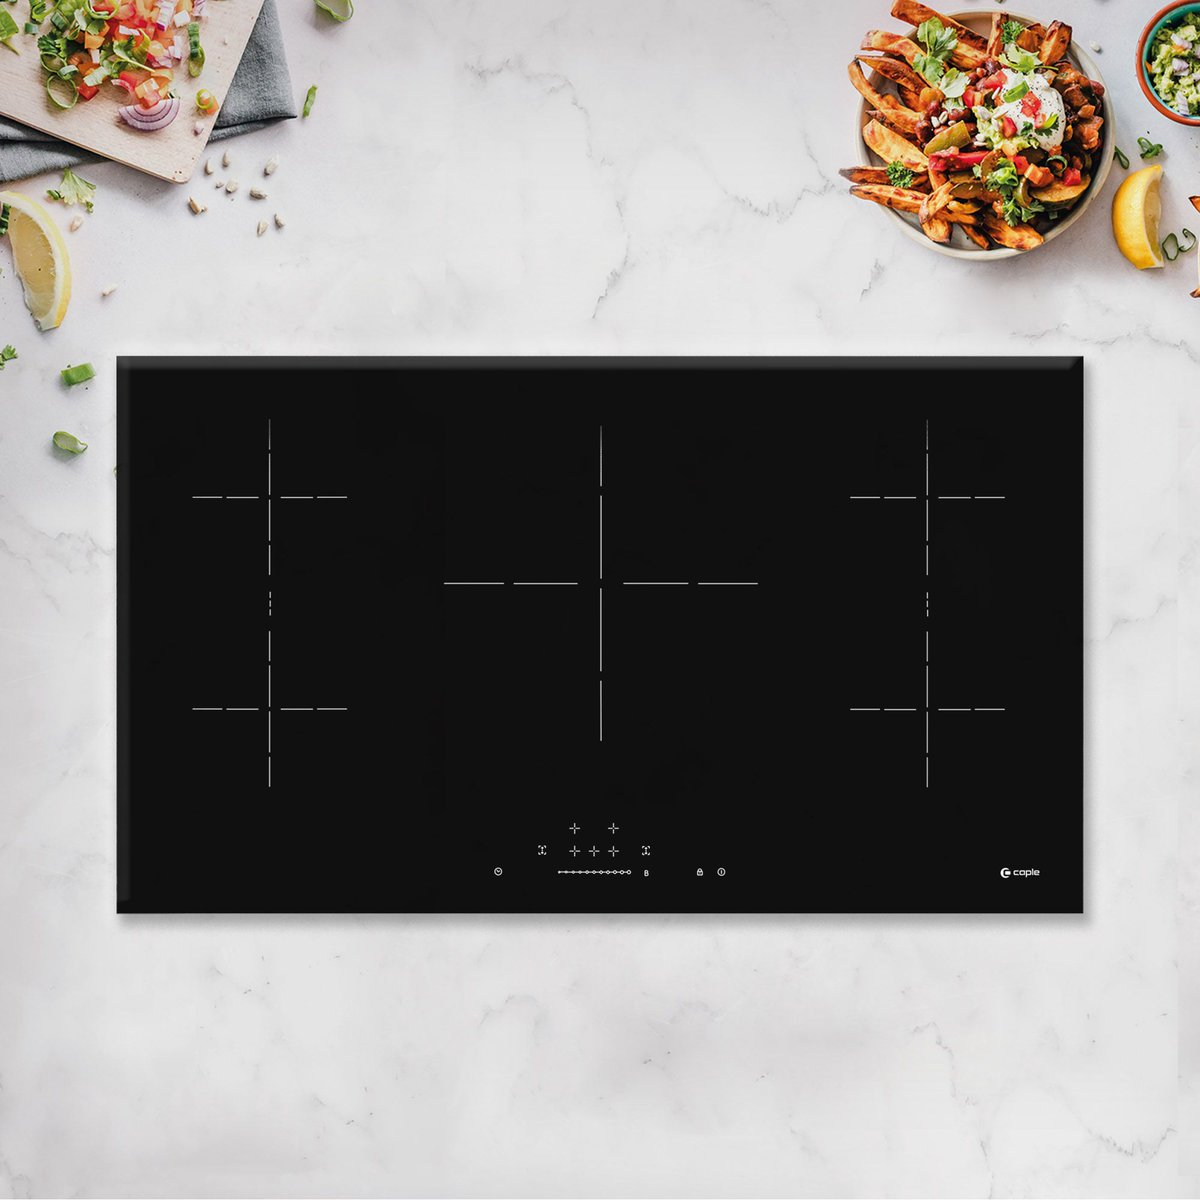 What are you cooking up this weekend?😋 Our new frameless C897i induction hob is perfect if you're cooking for a crowd. The programmable timer allows you to set a cooking duration and finishing time for each individual zone. See More: buff.ly/3sZinYU #CapleQuality